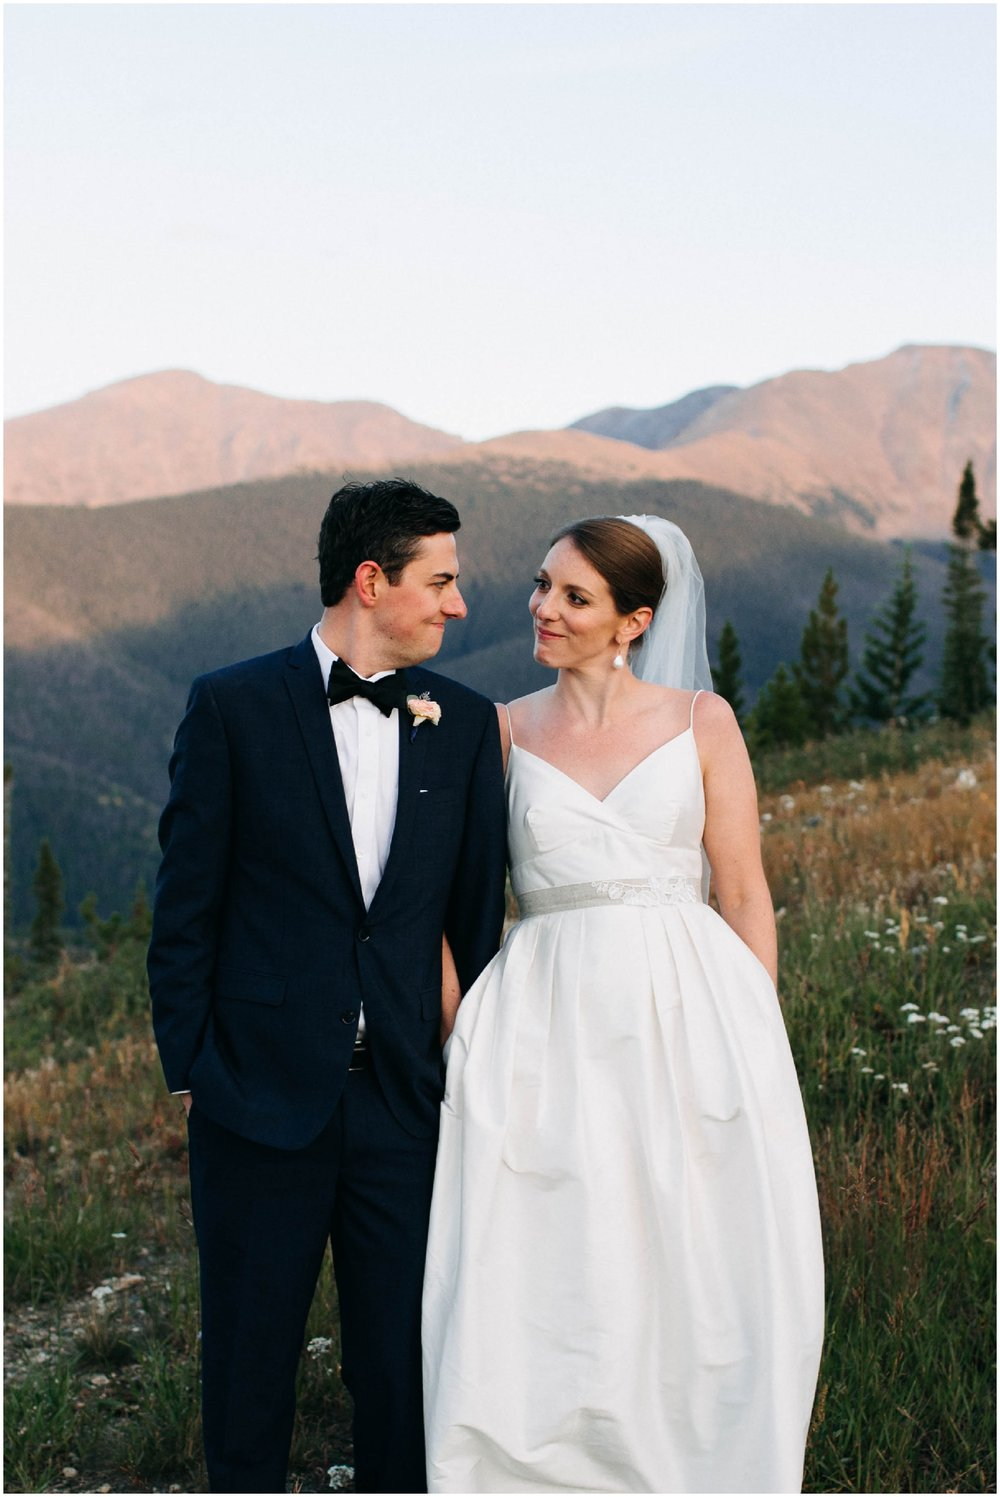 NadegeandJoe_elegant_winter_park_wedding_lodge_at_sunspot_mountain_taylor_powers_0238.jpg